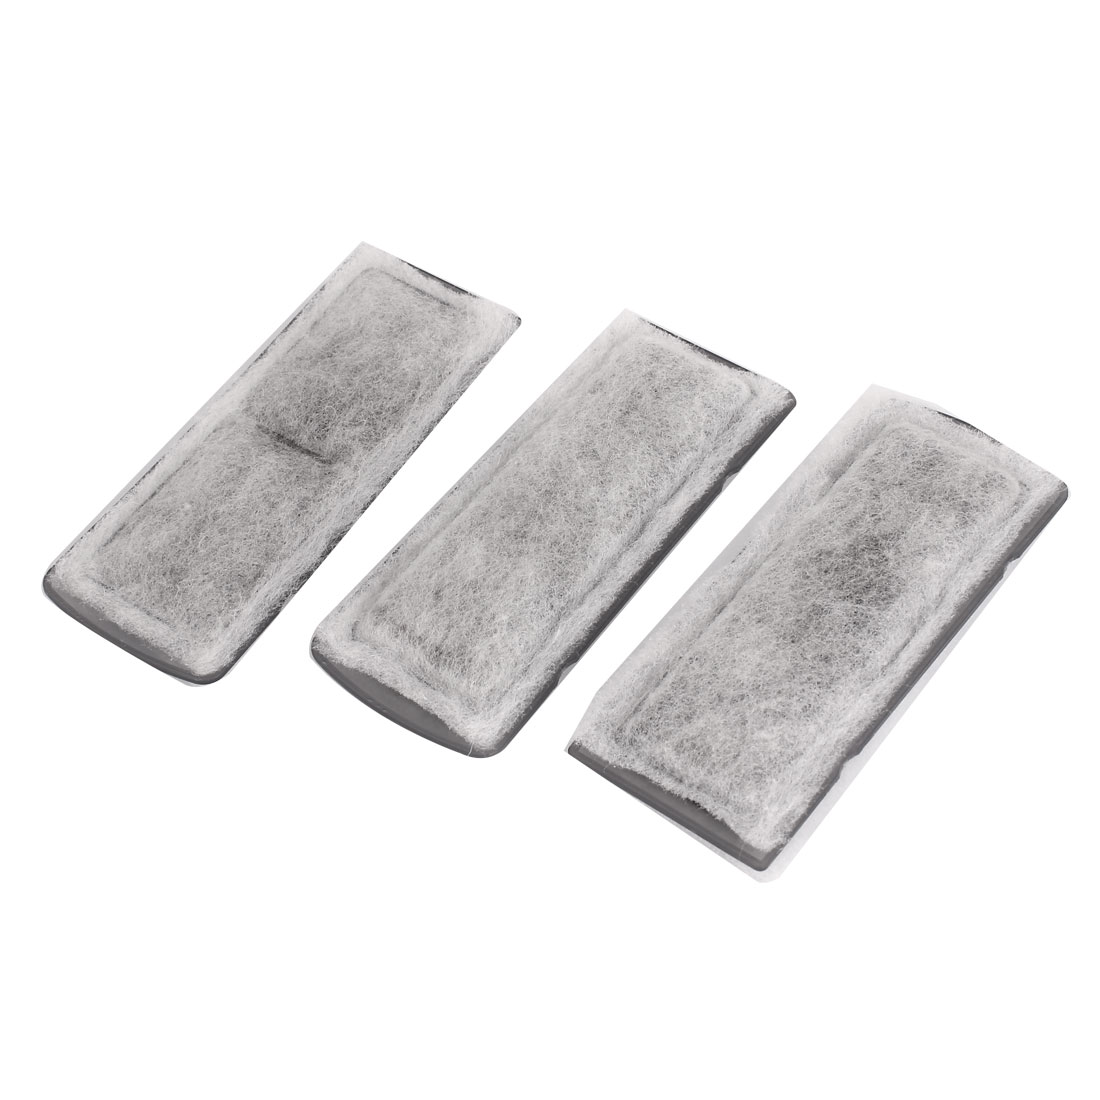 3 Pcs Gray Recycling Biochemical Filter Sponges Pad for Fish Aquarium